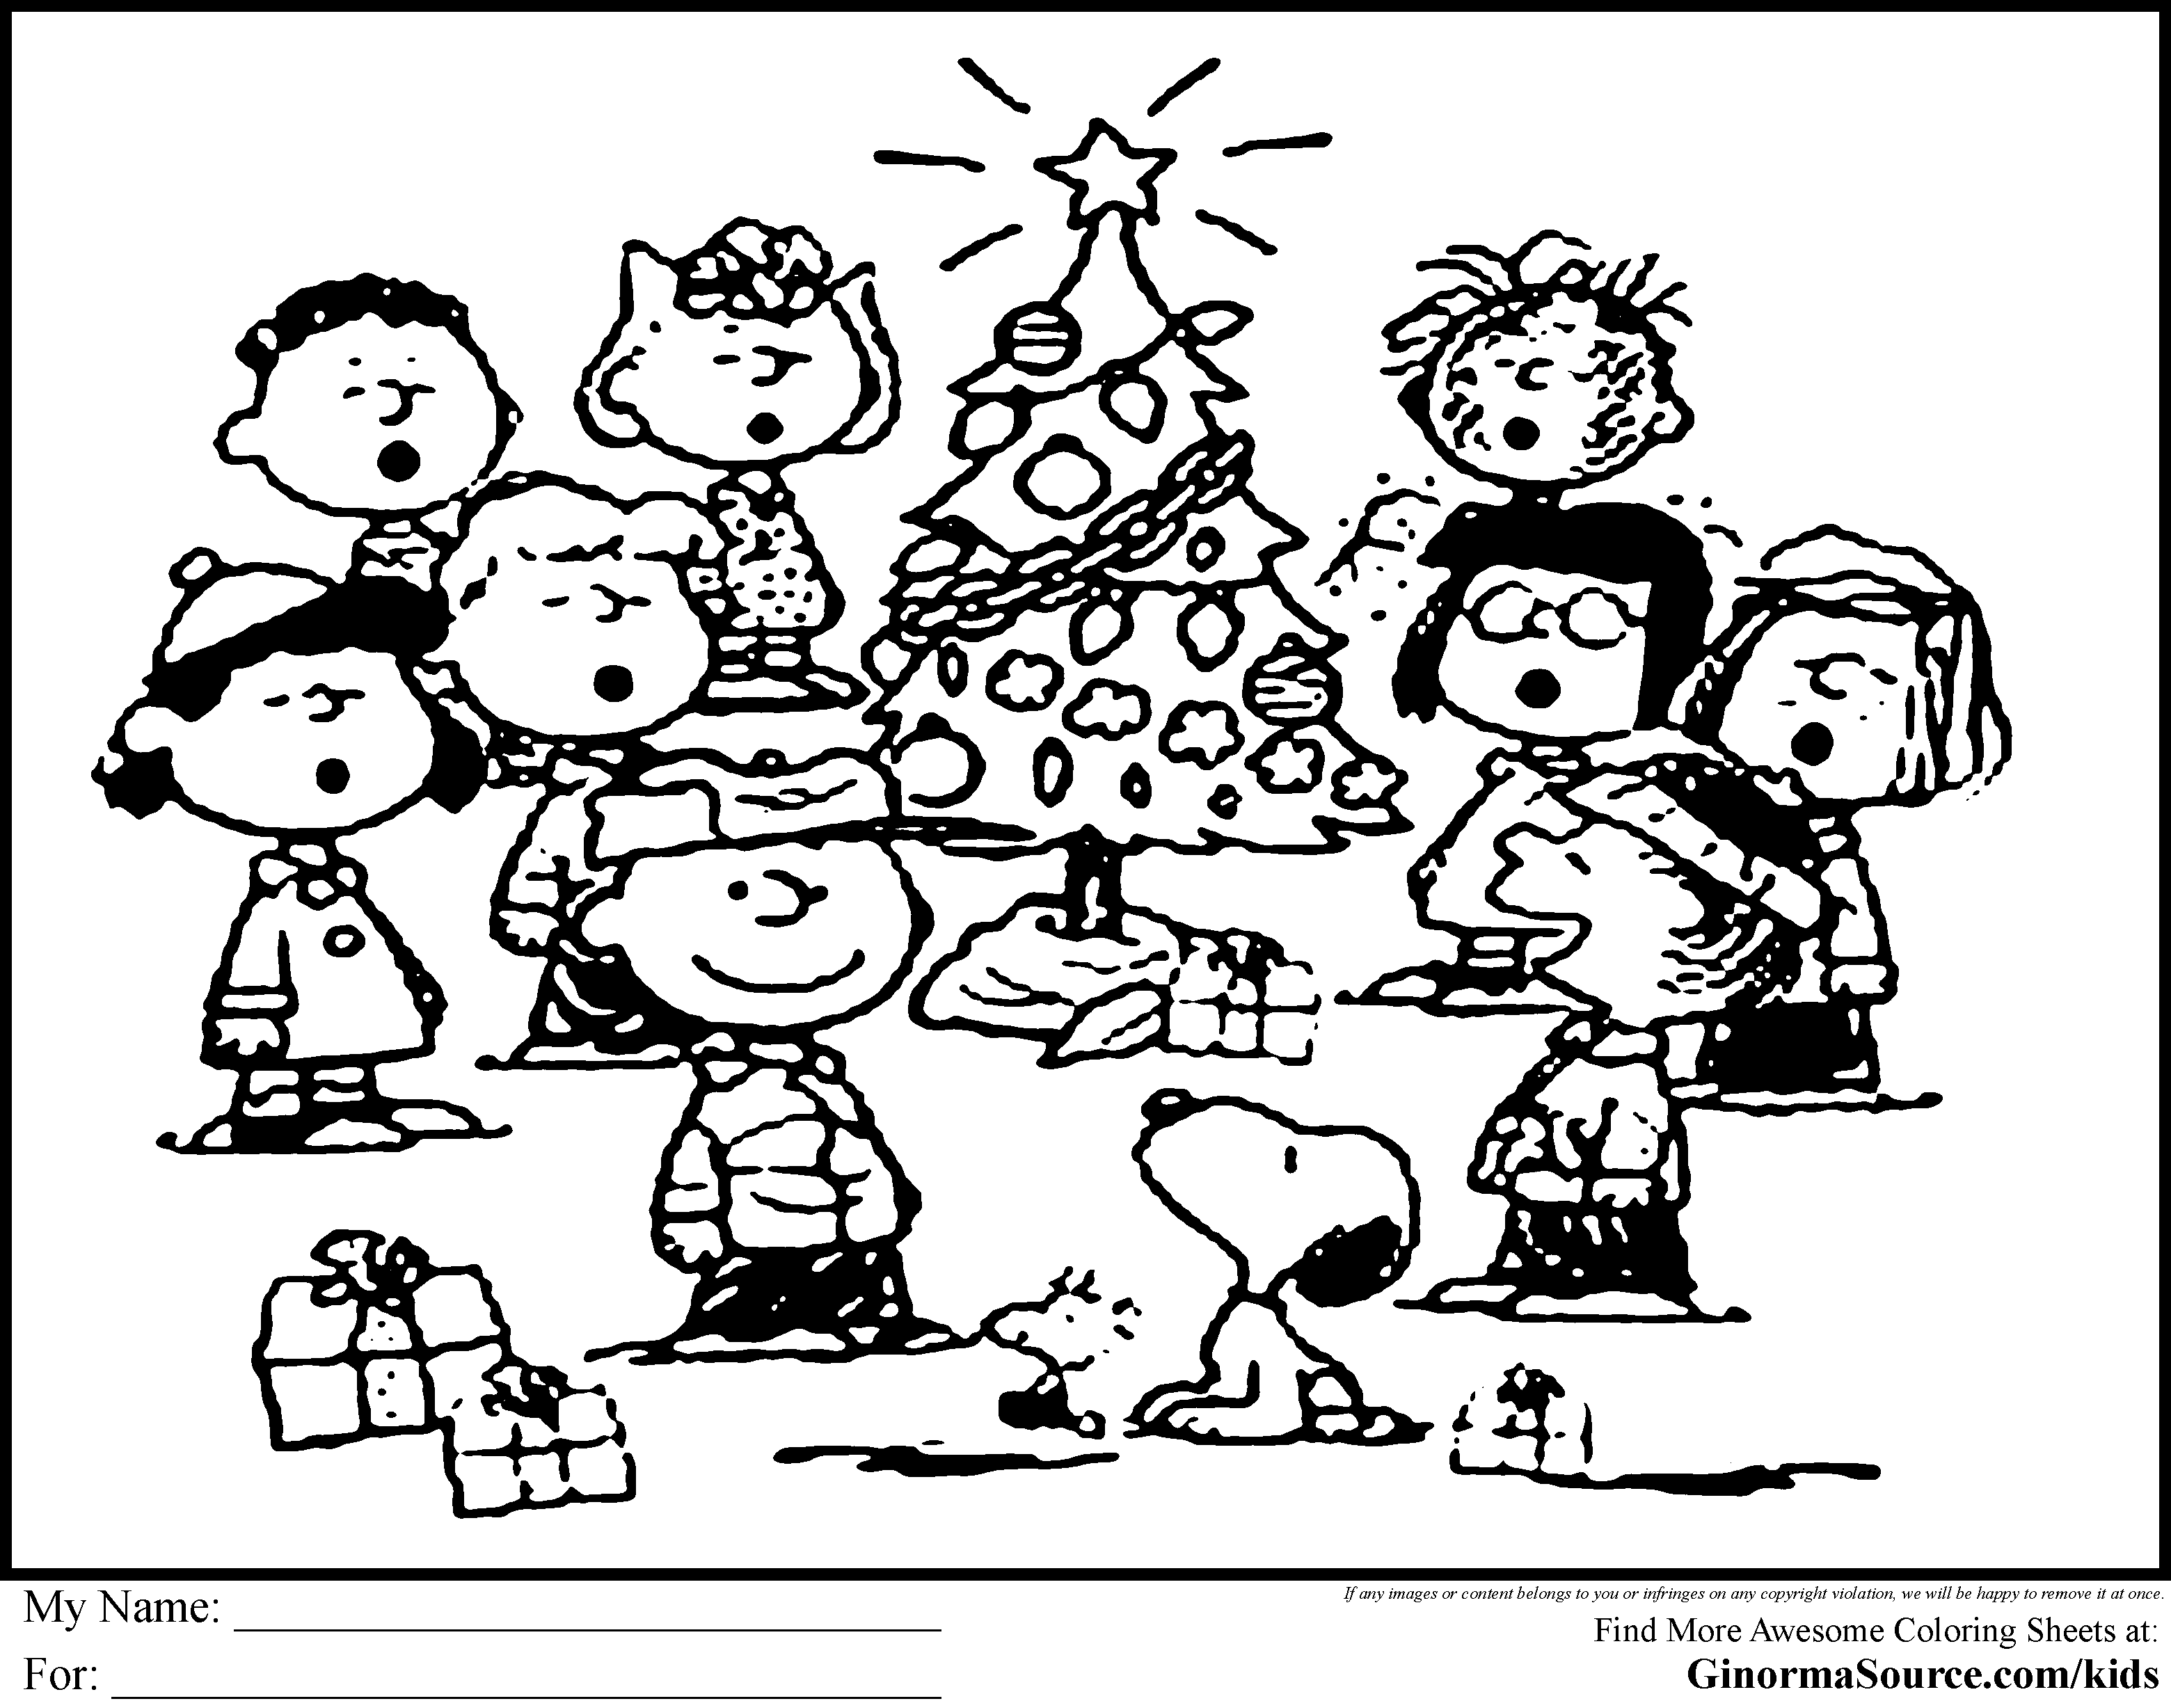 Coloring Pages Charlie Brown Characters Coloring Pages charlie brown characters coloring pages az snoopy christmas for